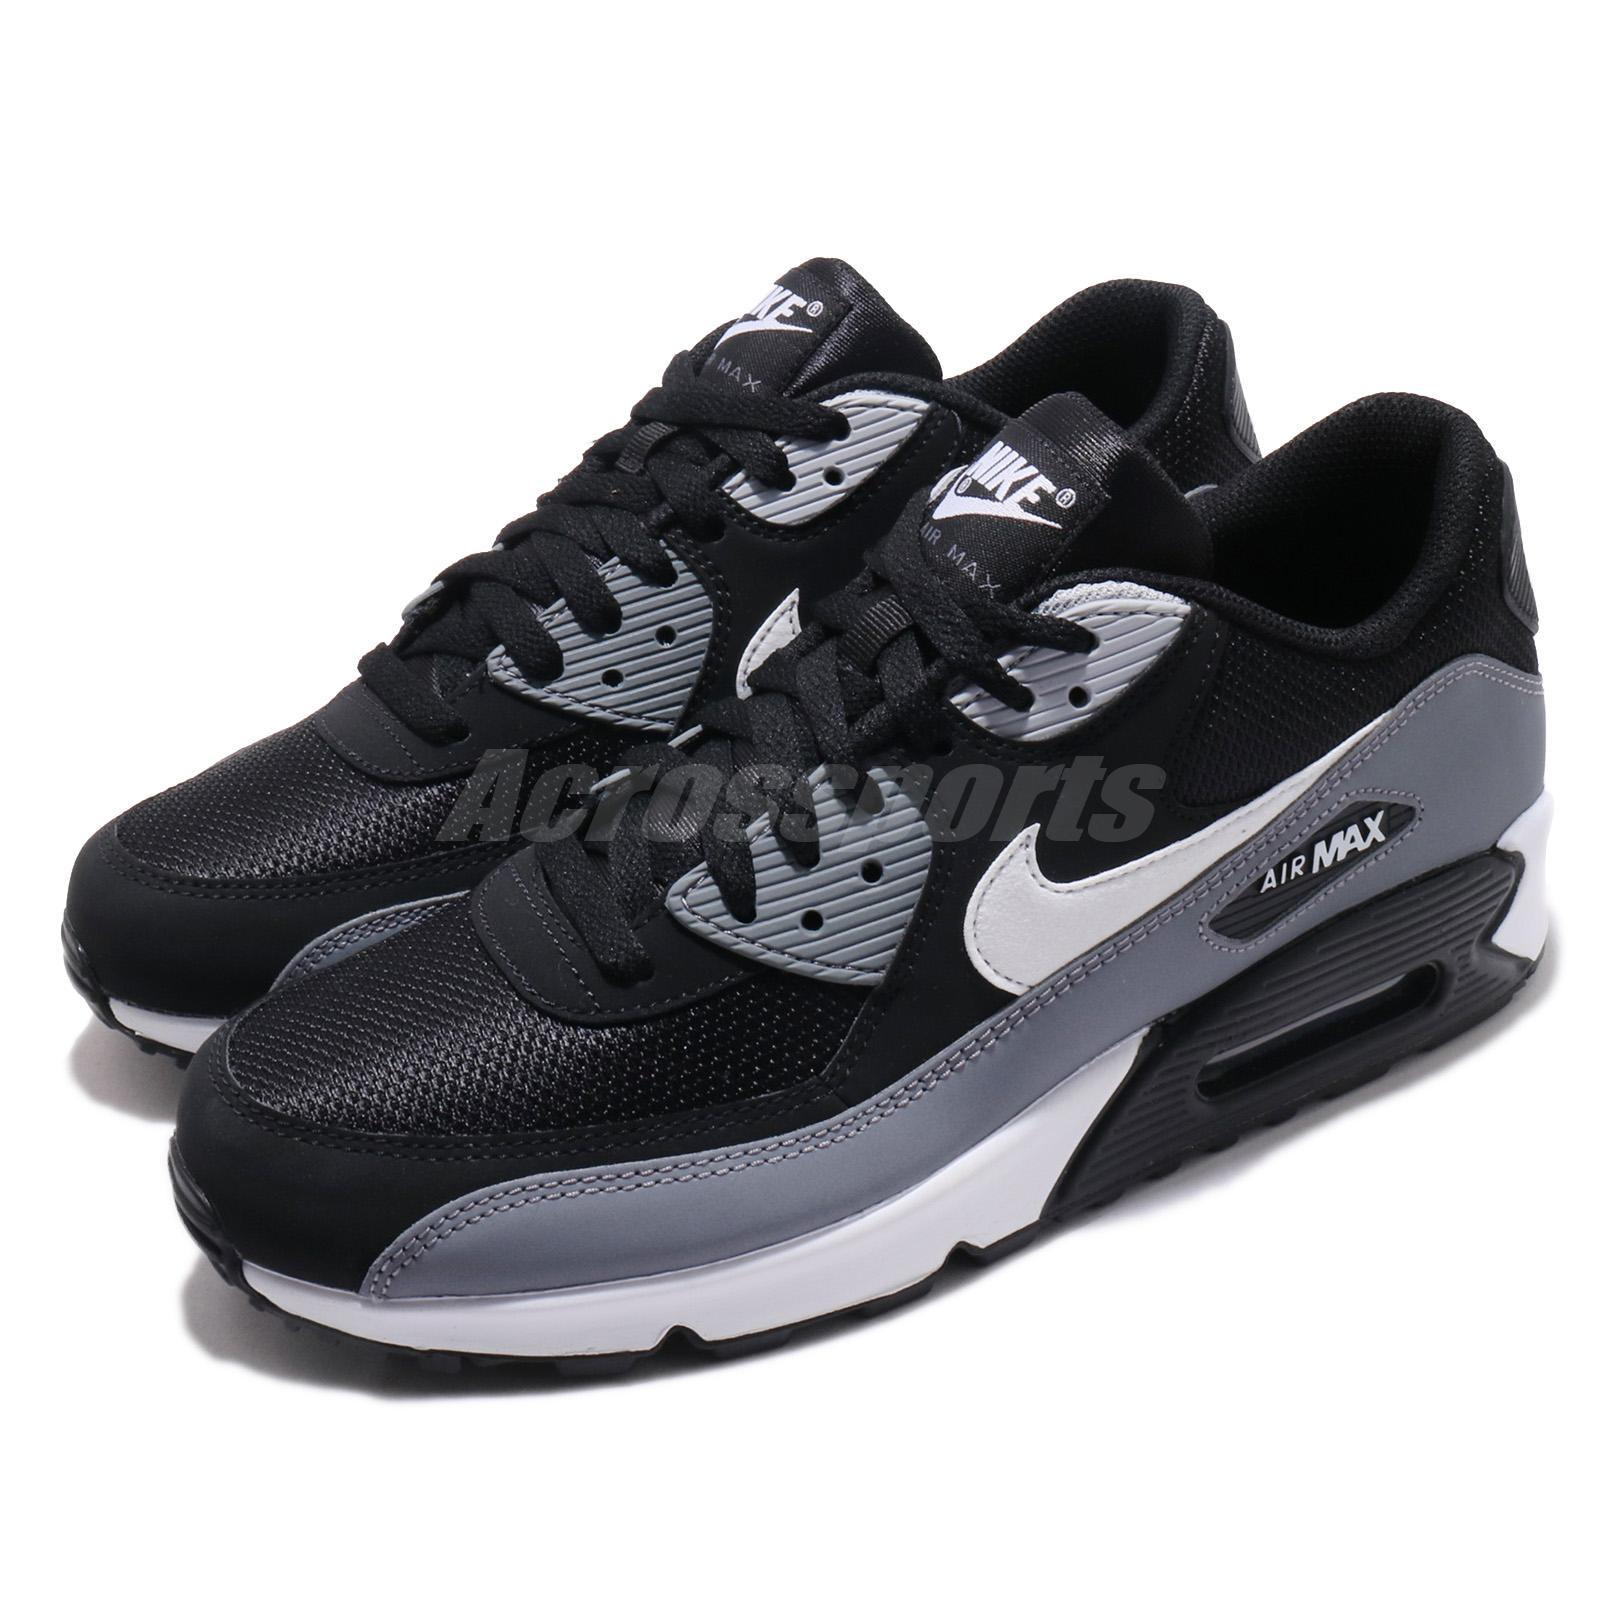 Details about Nike Air Max 90 Essential Black White Grey Men Running Shoes Sneakers AJ1285 018